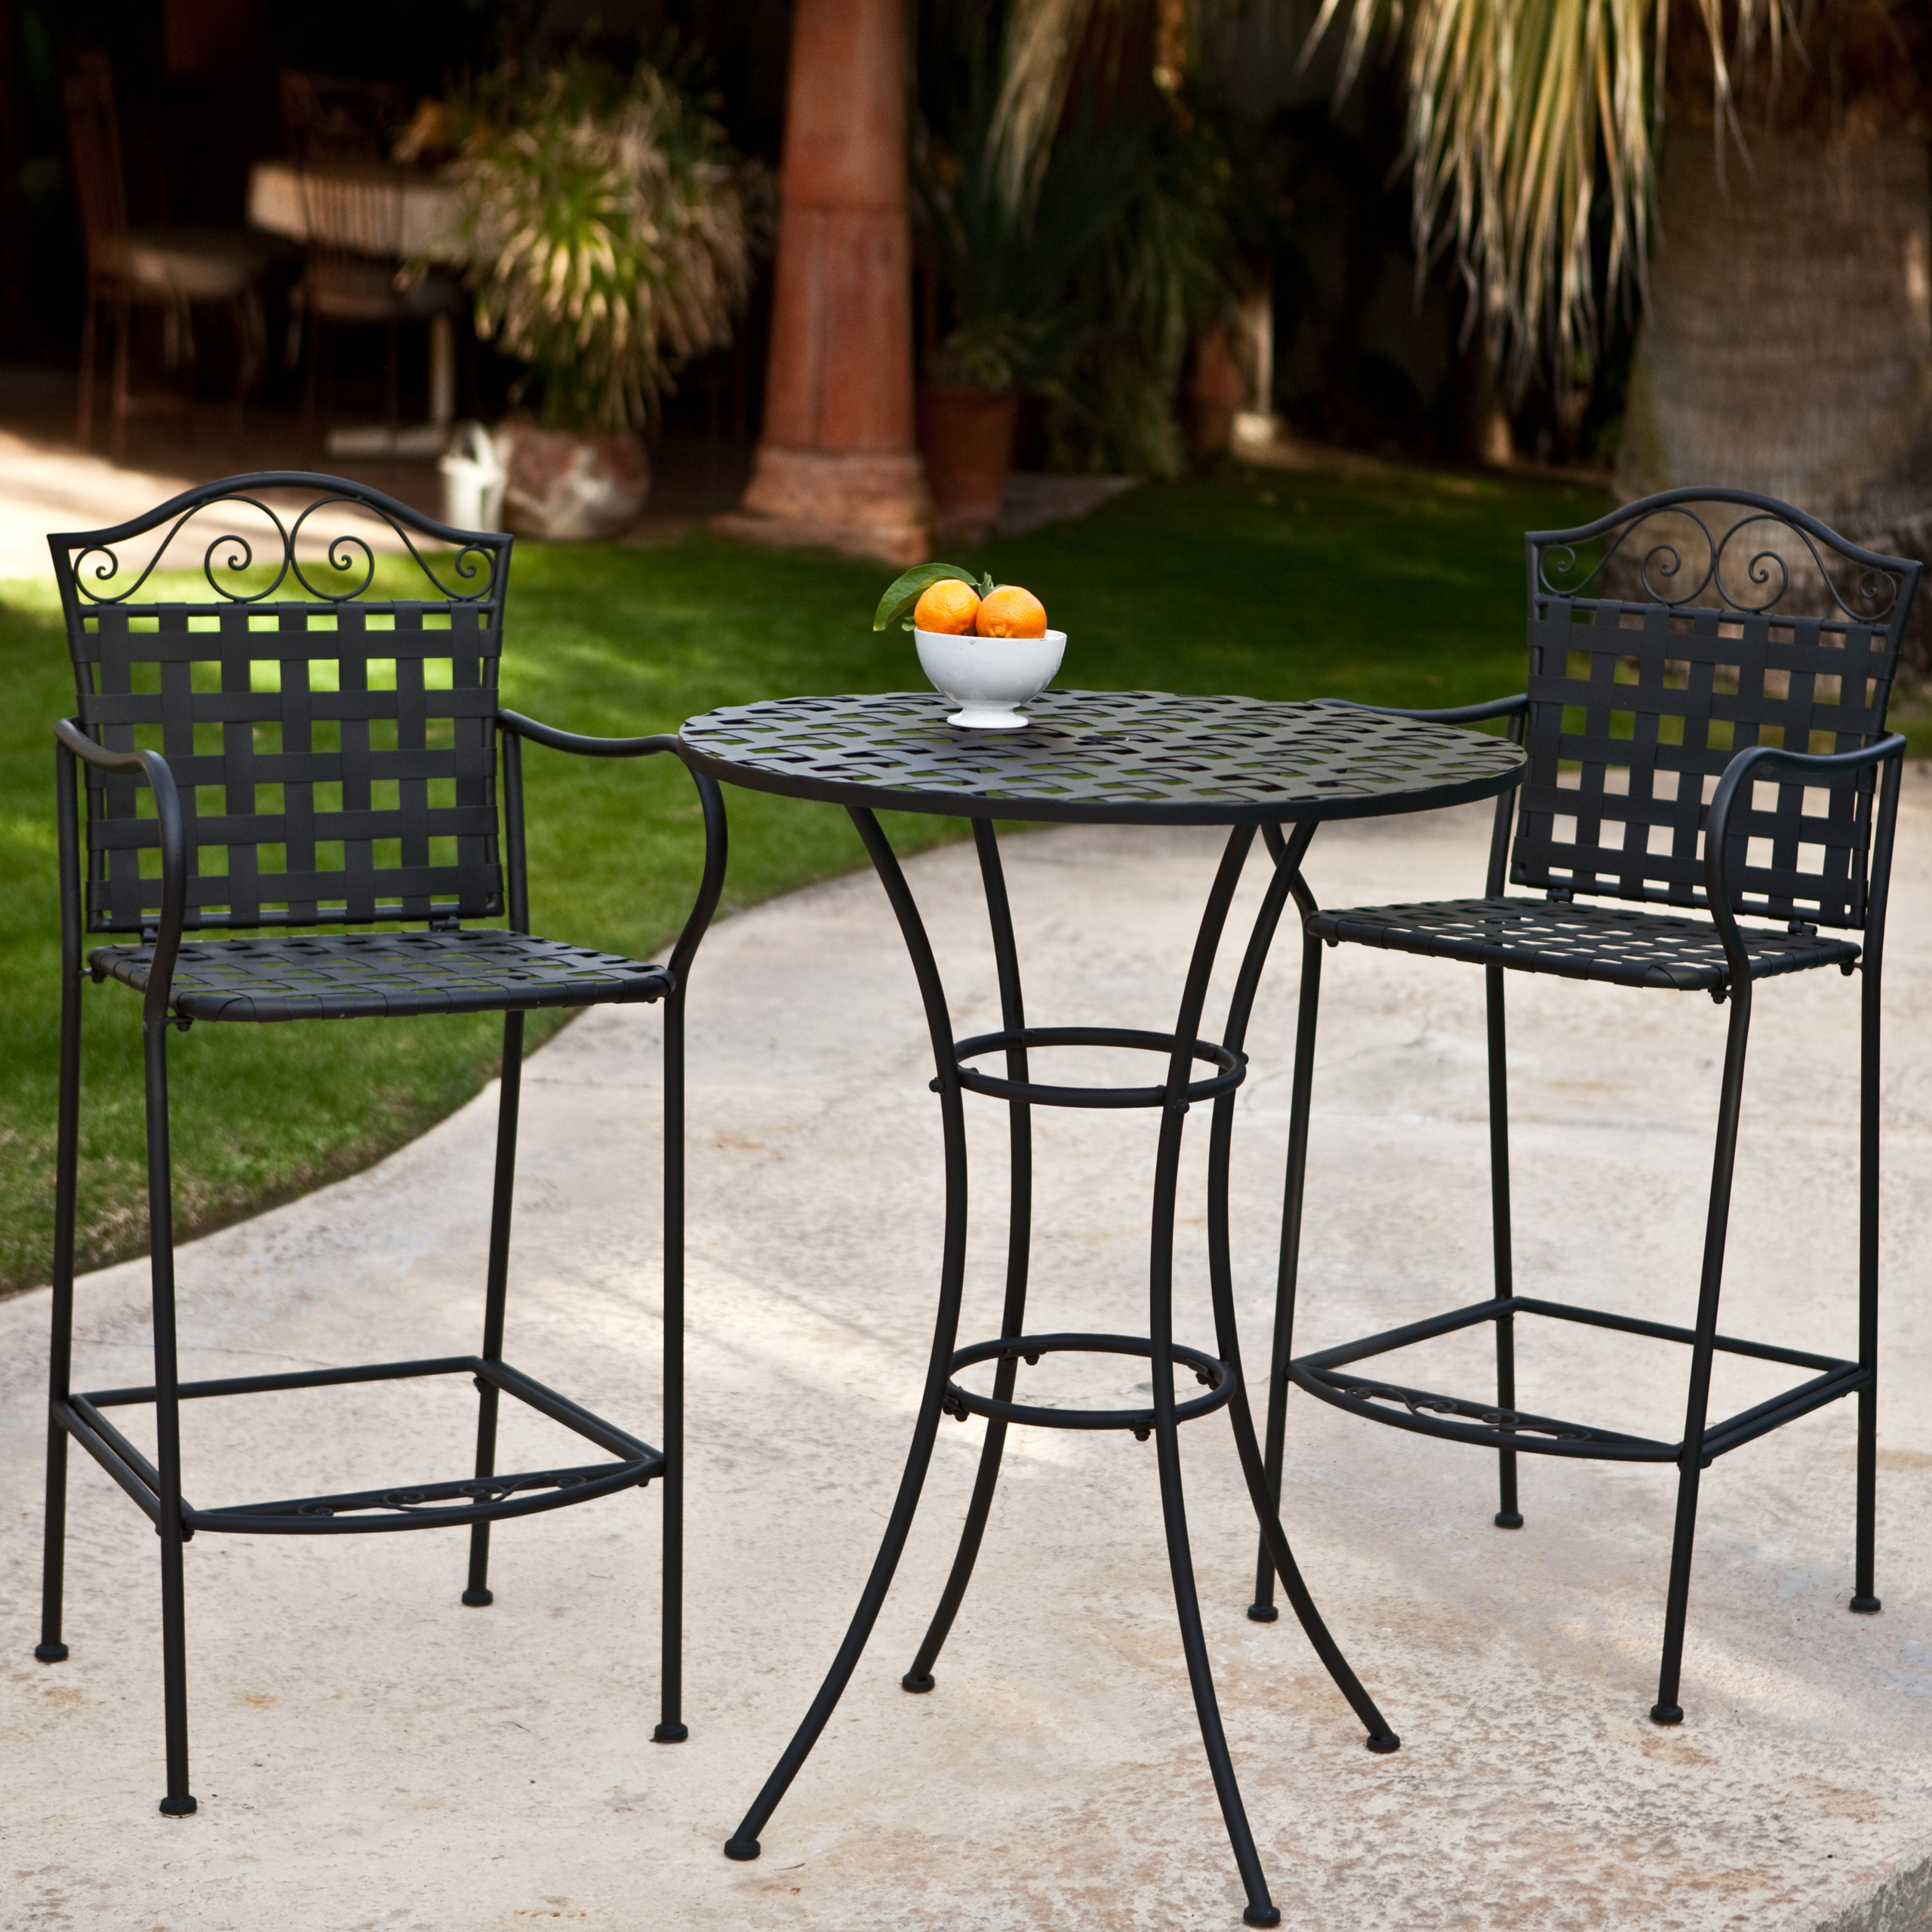 Bar Height Bistro Set You Ll Love In 2021 Visualhunt